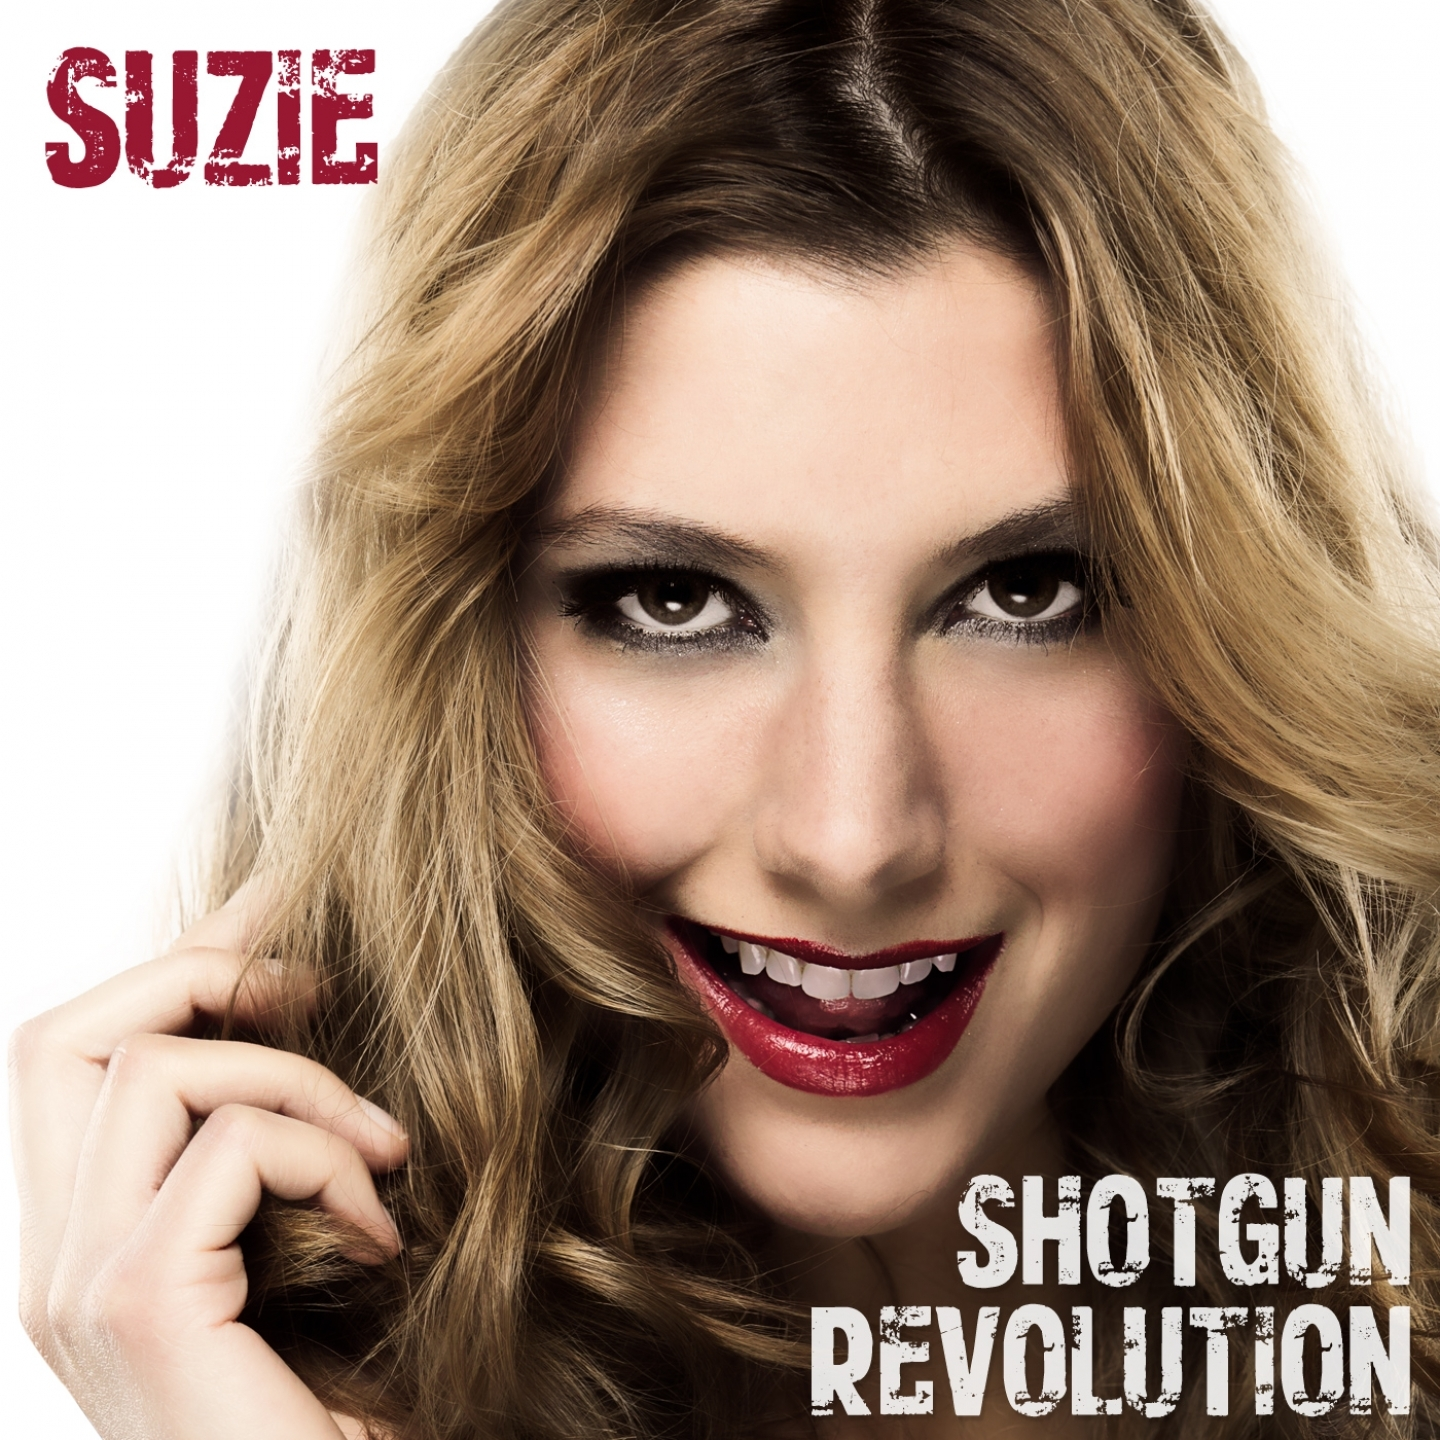 Shotgun Revolution – 'Suzie' (Single)